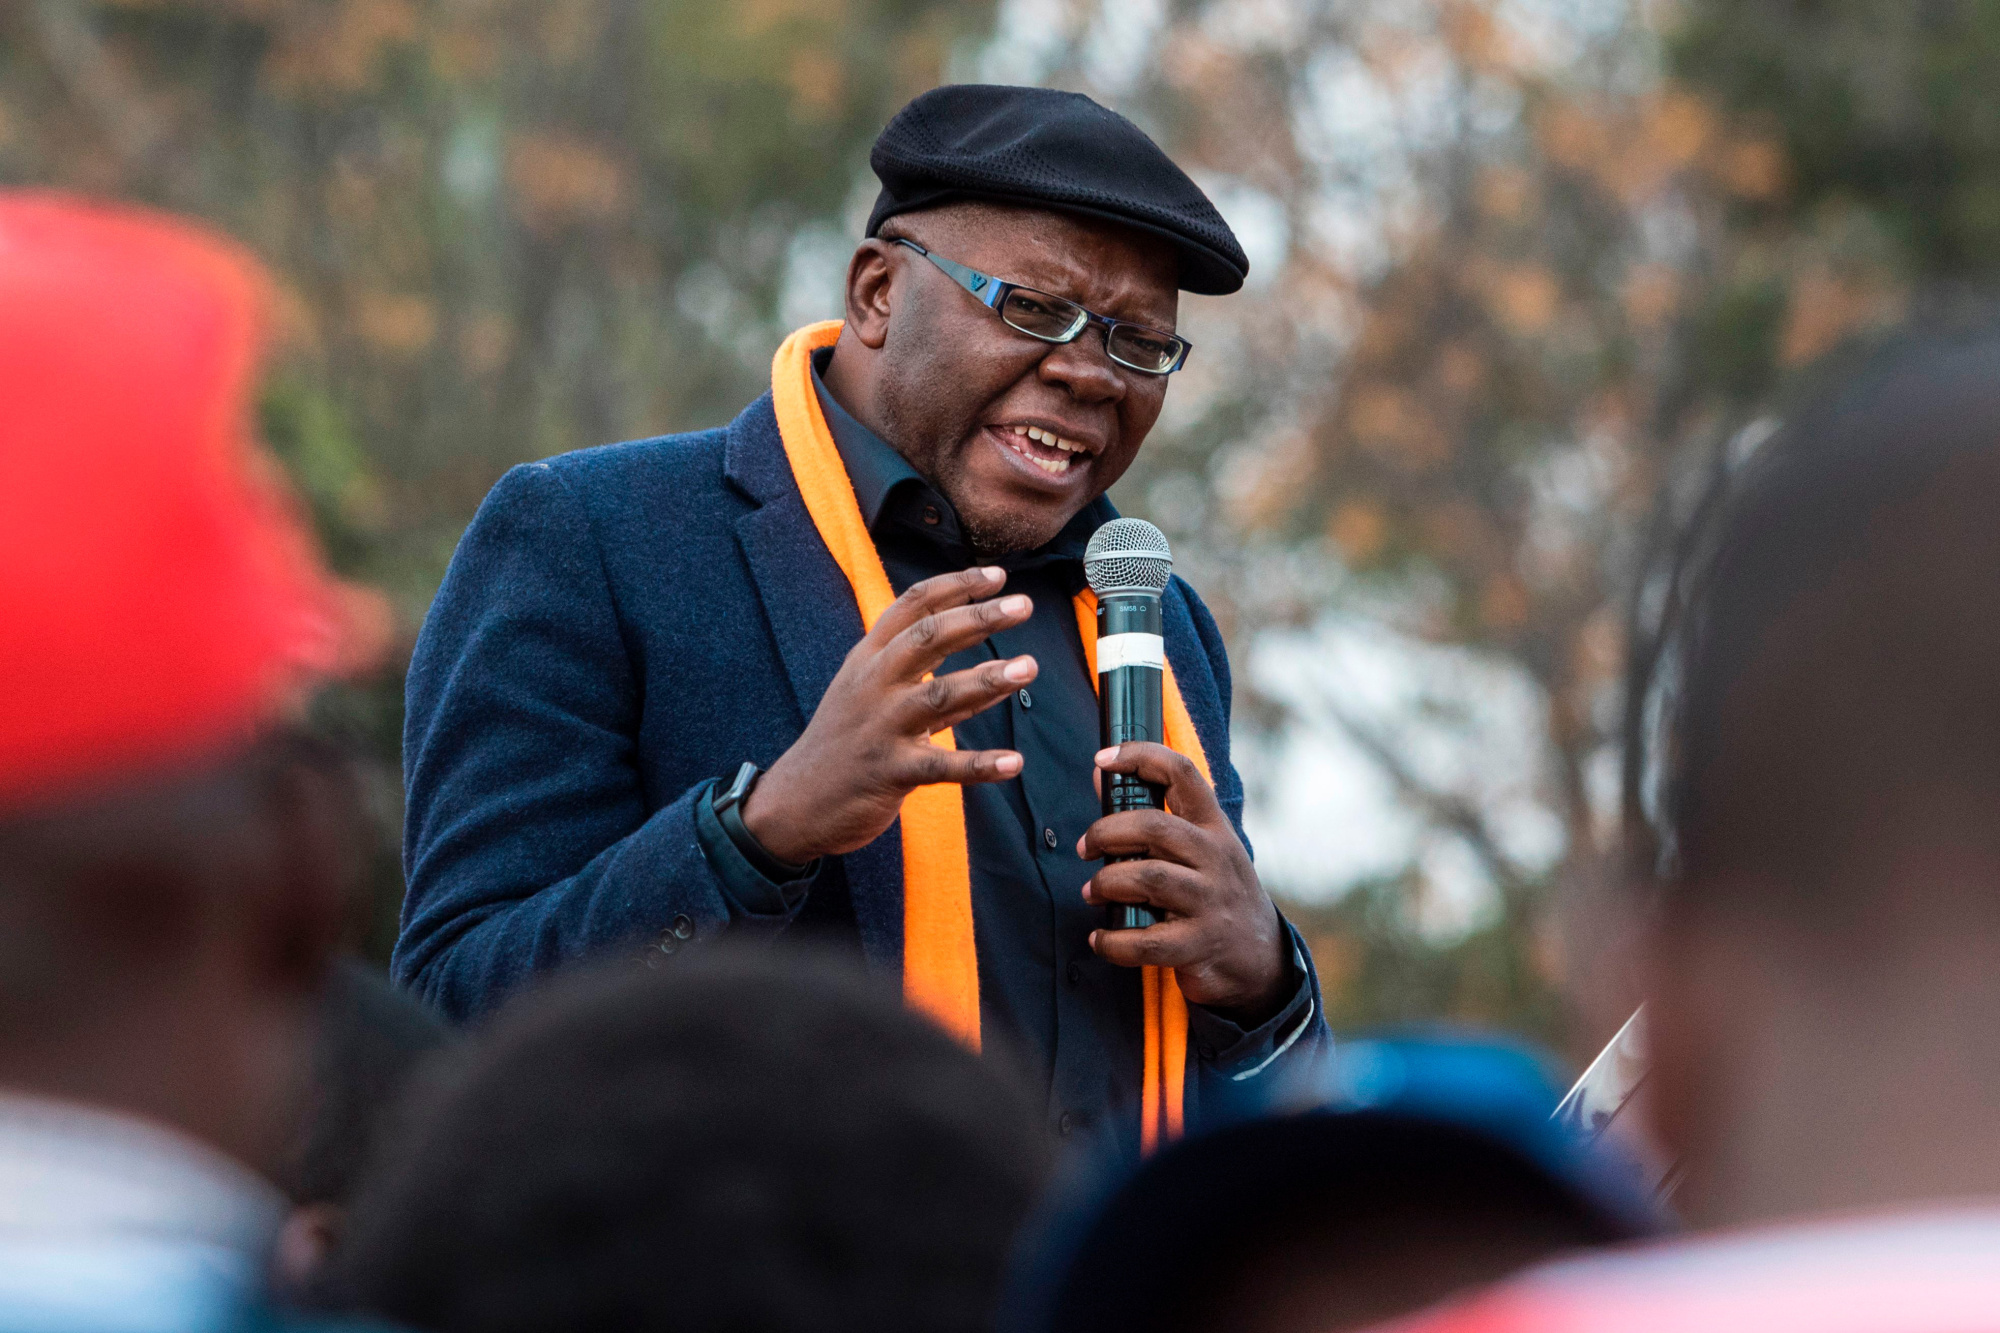 Zimbabwe's Election Most Important in a Generation, Biti Says